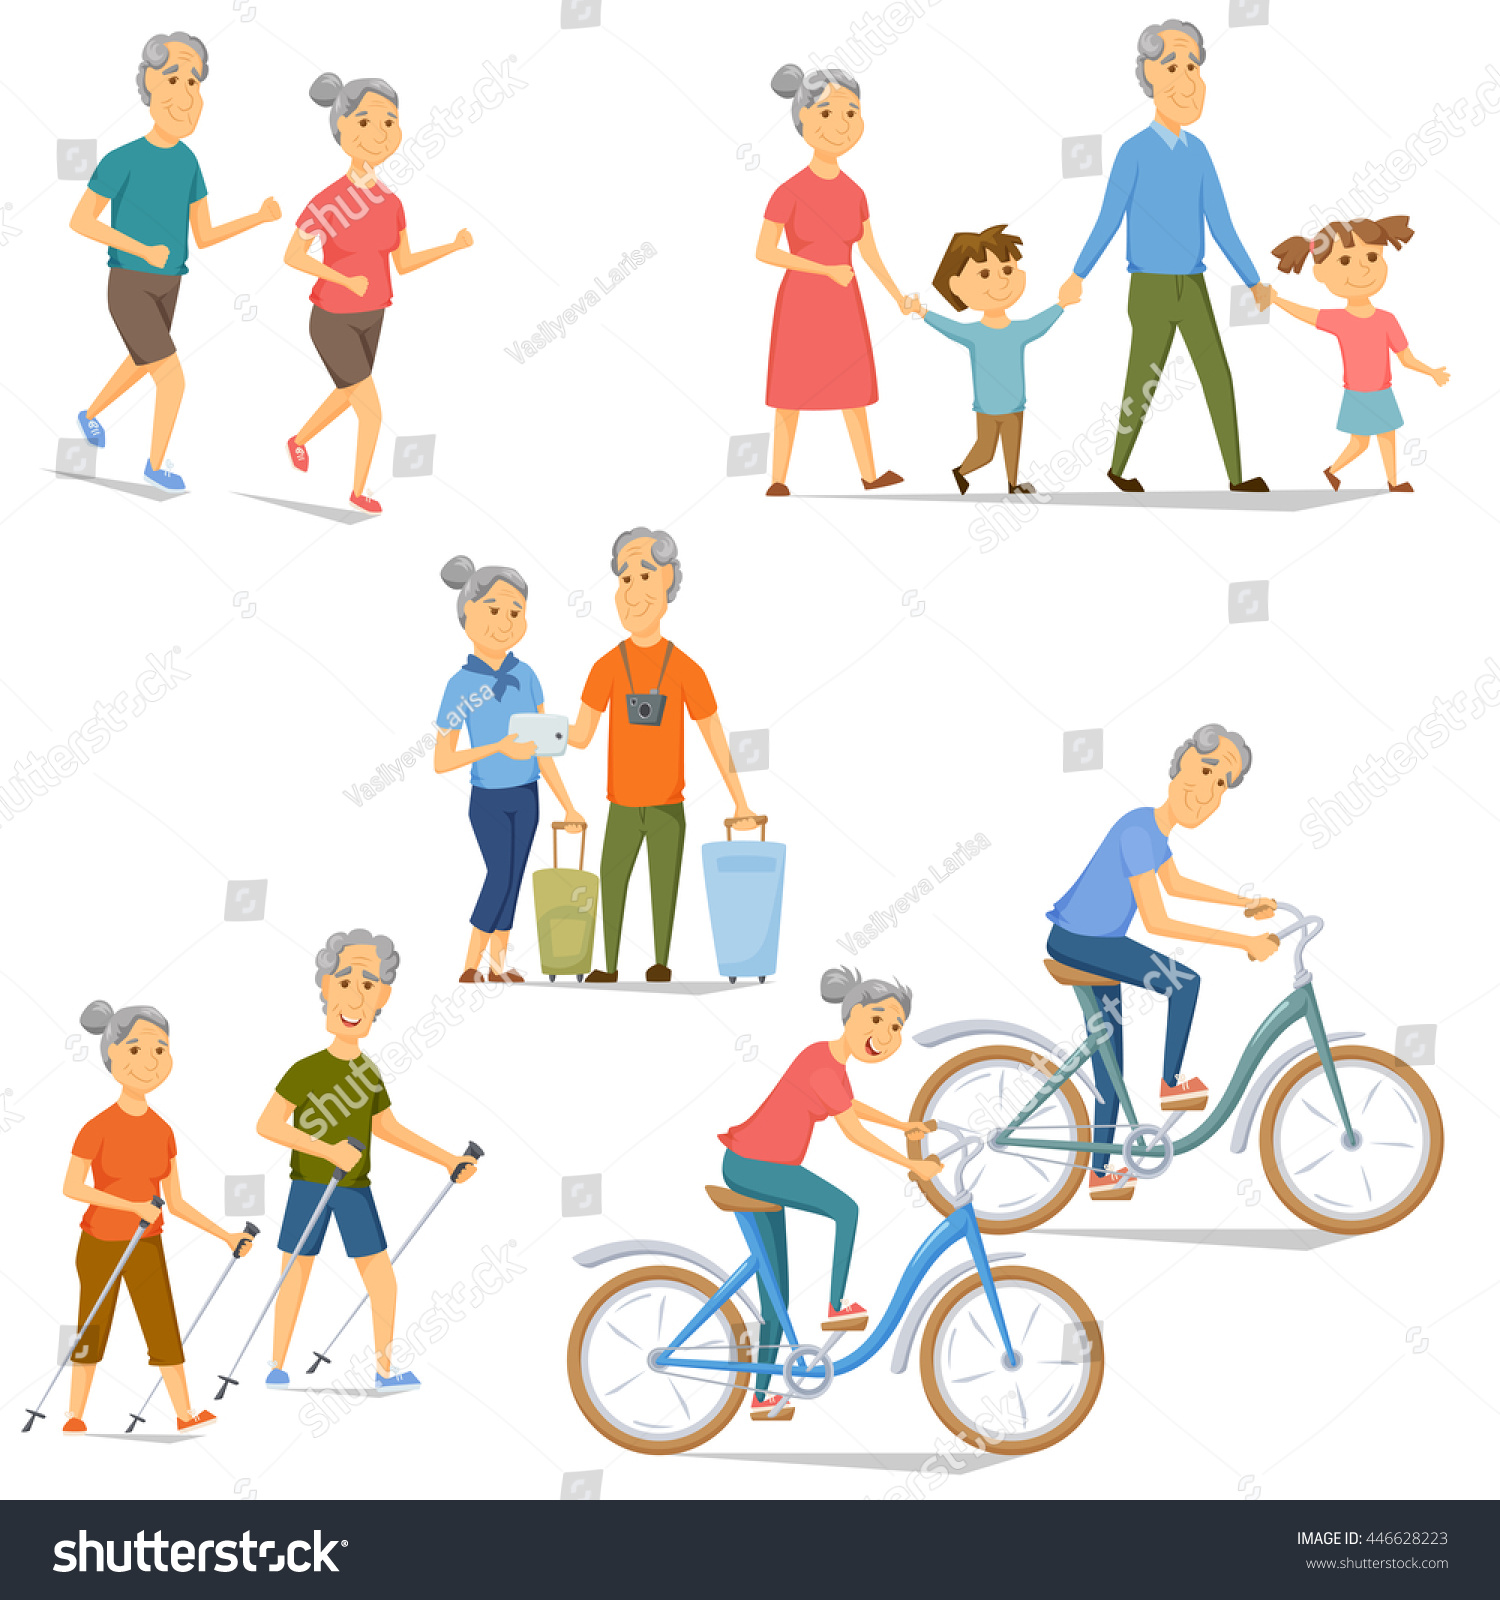 Seniors Leisure Activity Set Pensioners Bicycling Stock Vector